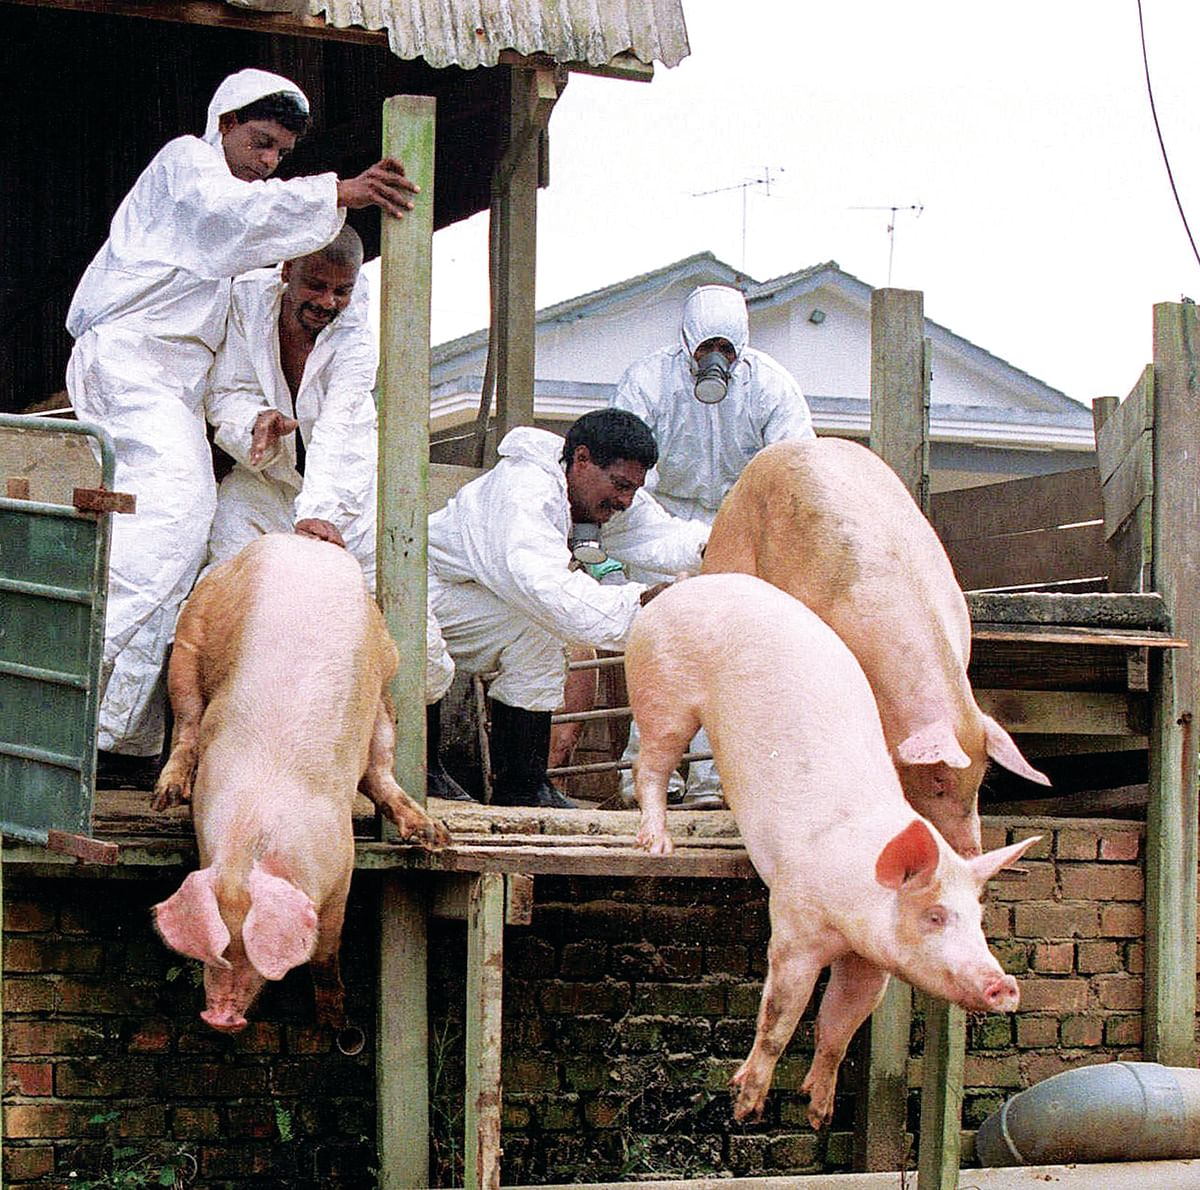 Pig farm workers push live pigs into a large grave in Nipah in 1999. To stop the outbreak, the Malaysian government culled almost 1 million pigs,nearly destroying the country's pork industry.